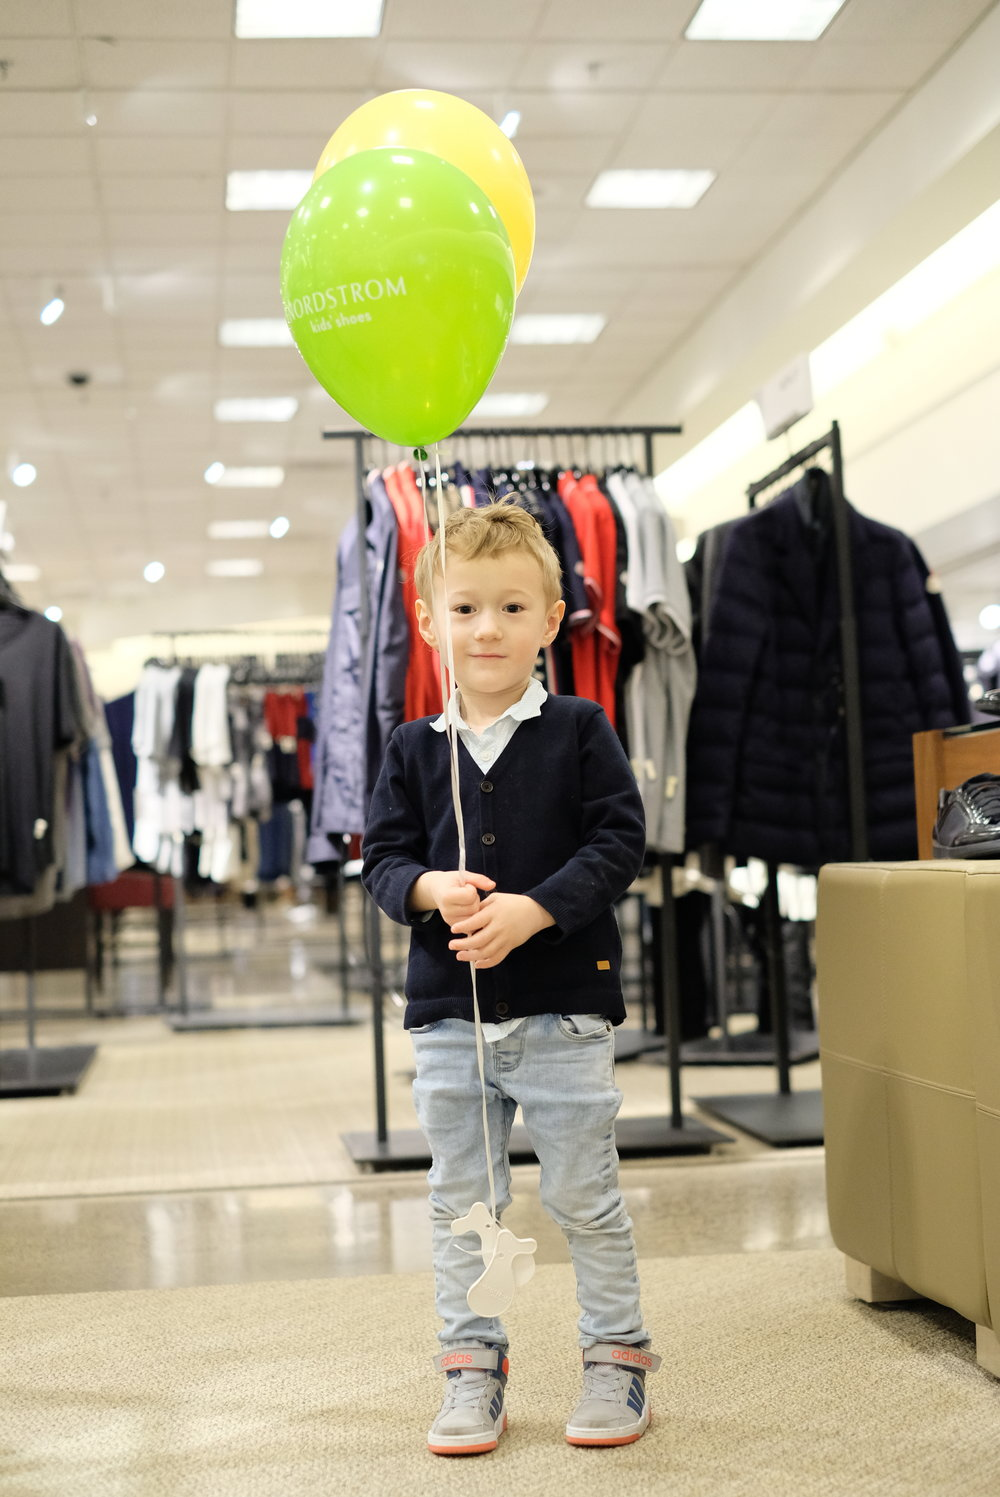 Balloons at Nordstrom in Portland, OR | Birthday Getaway | by Totes and the City